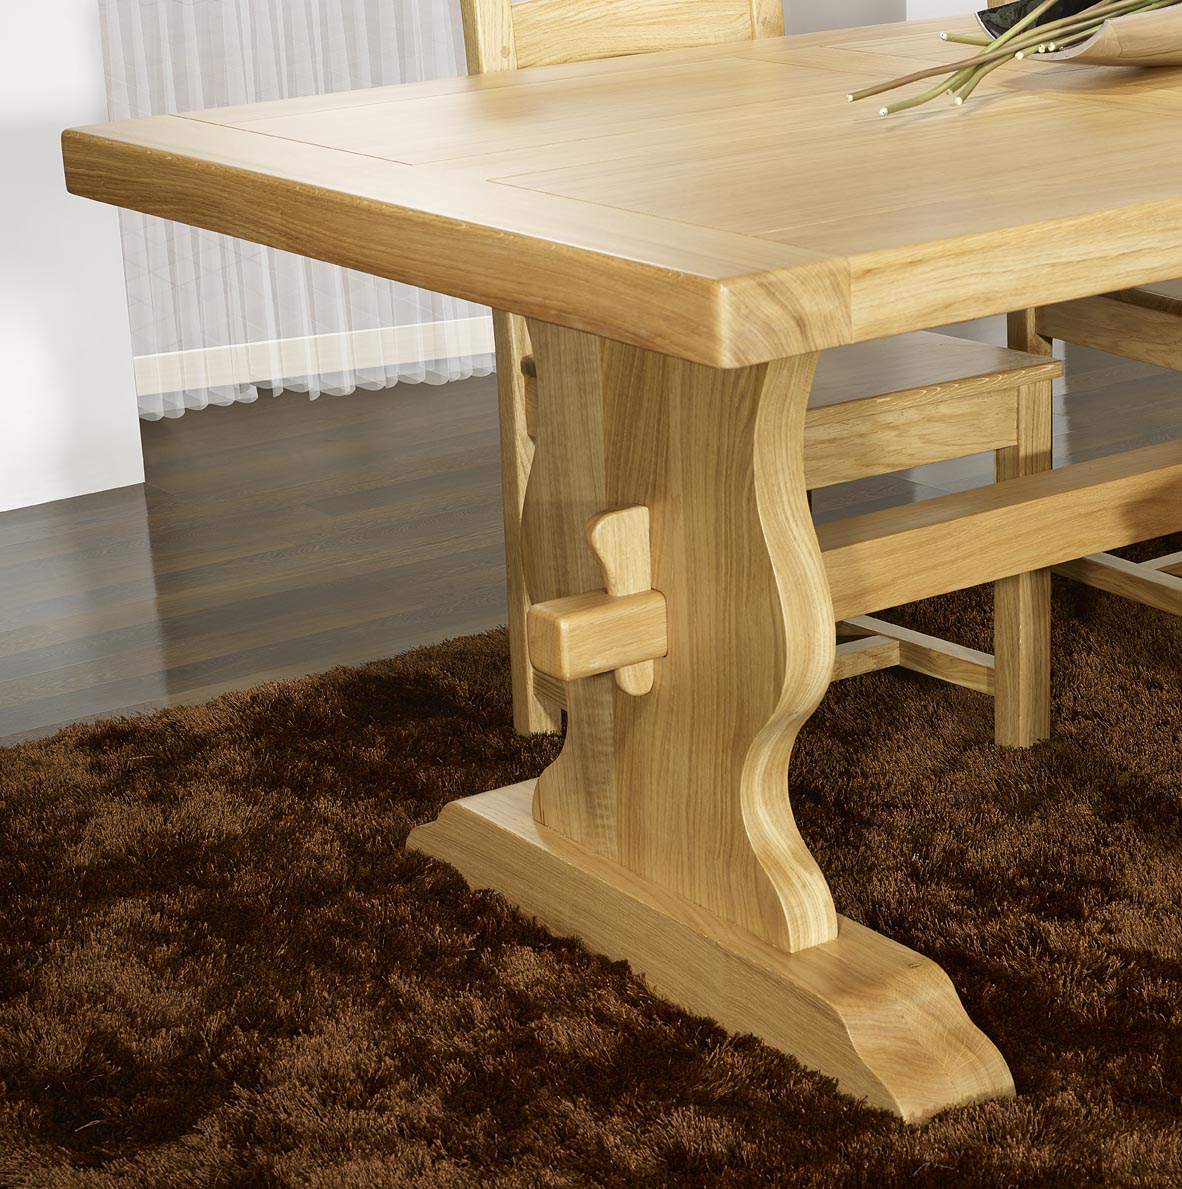 Table monast re 200x100 en ch ne massif meuble en ch ne massif - Table en chene massif prix ...